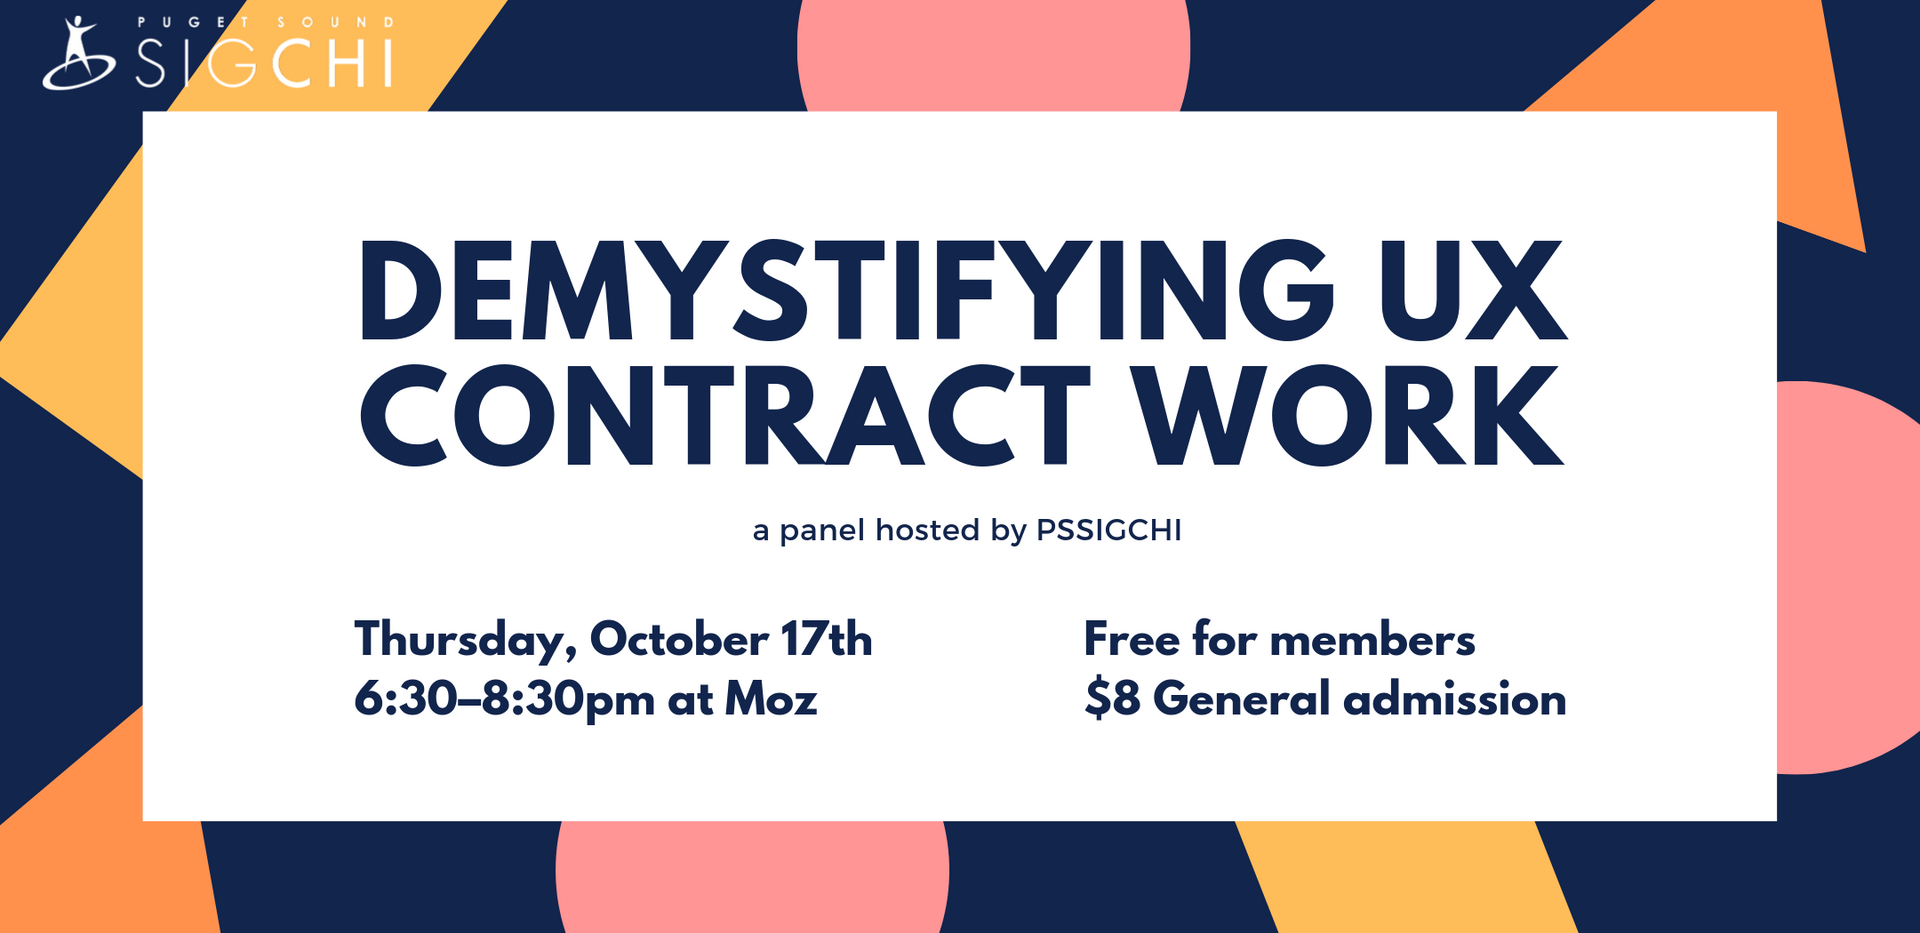 Demystifying UX contract work